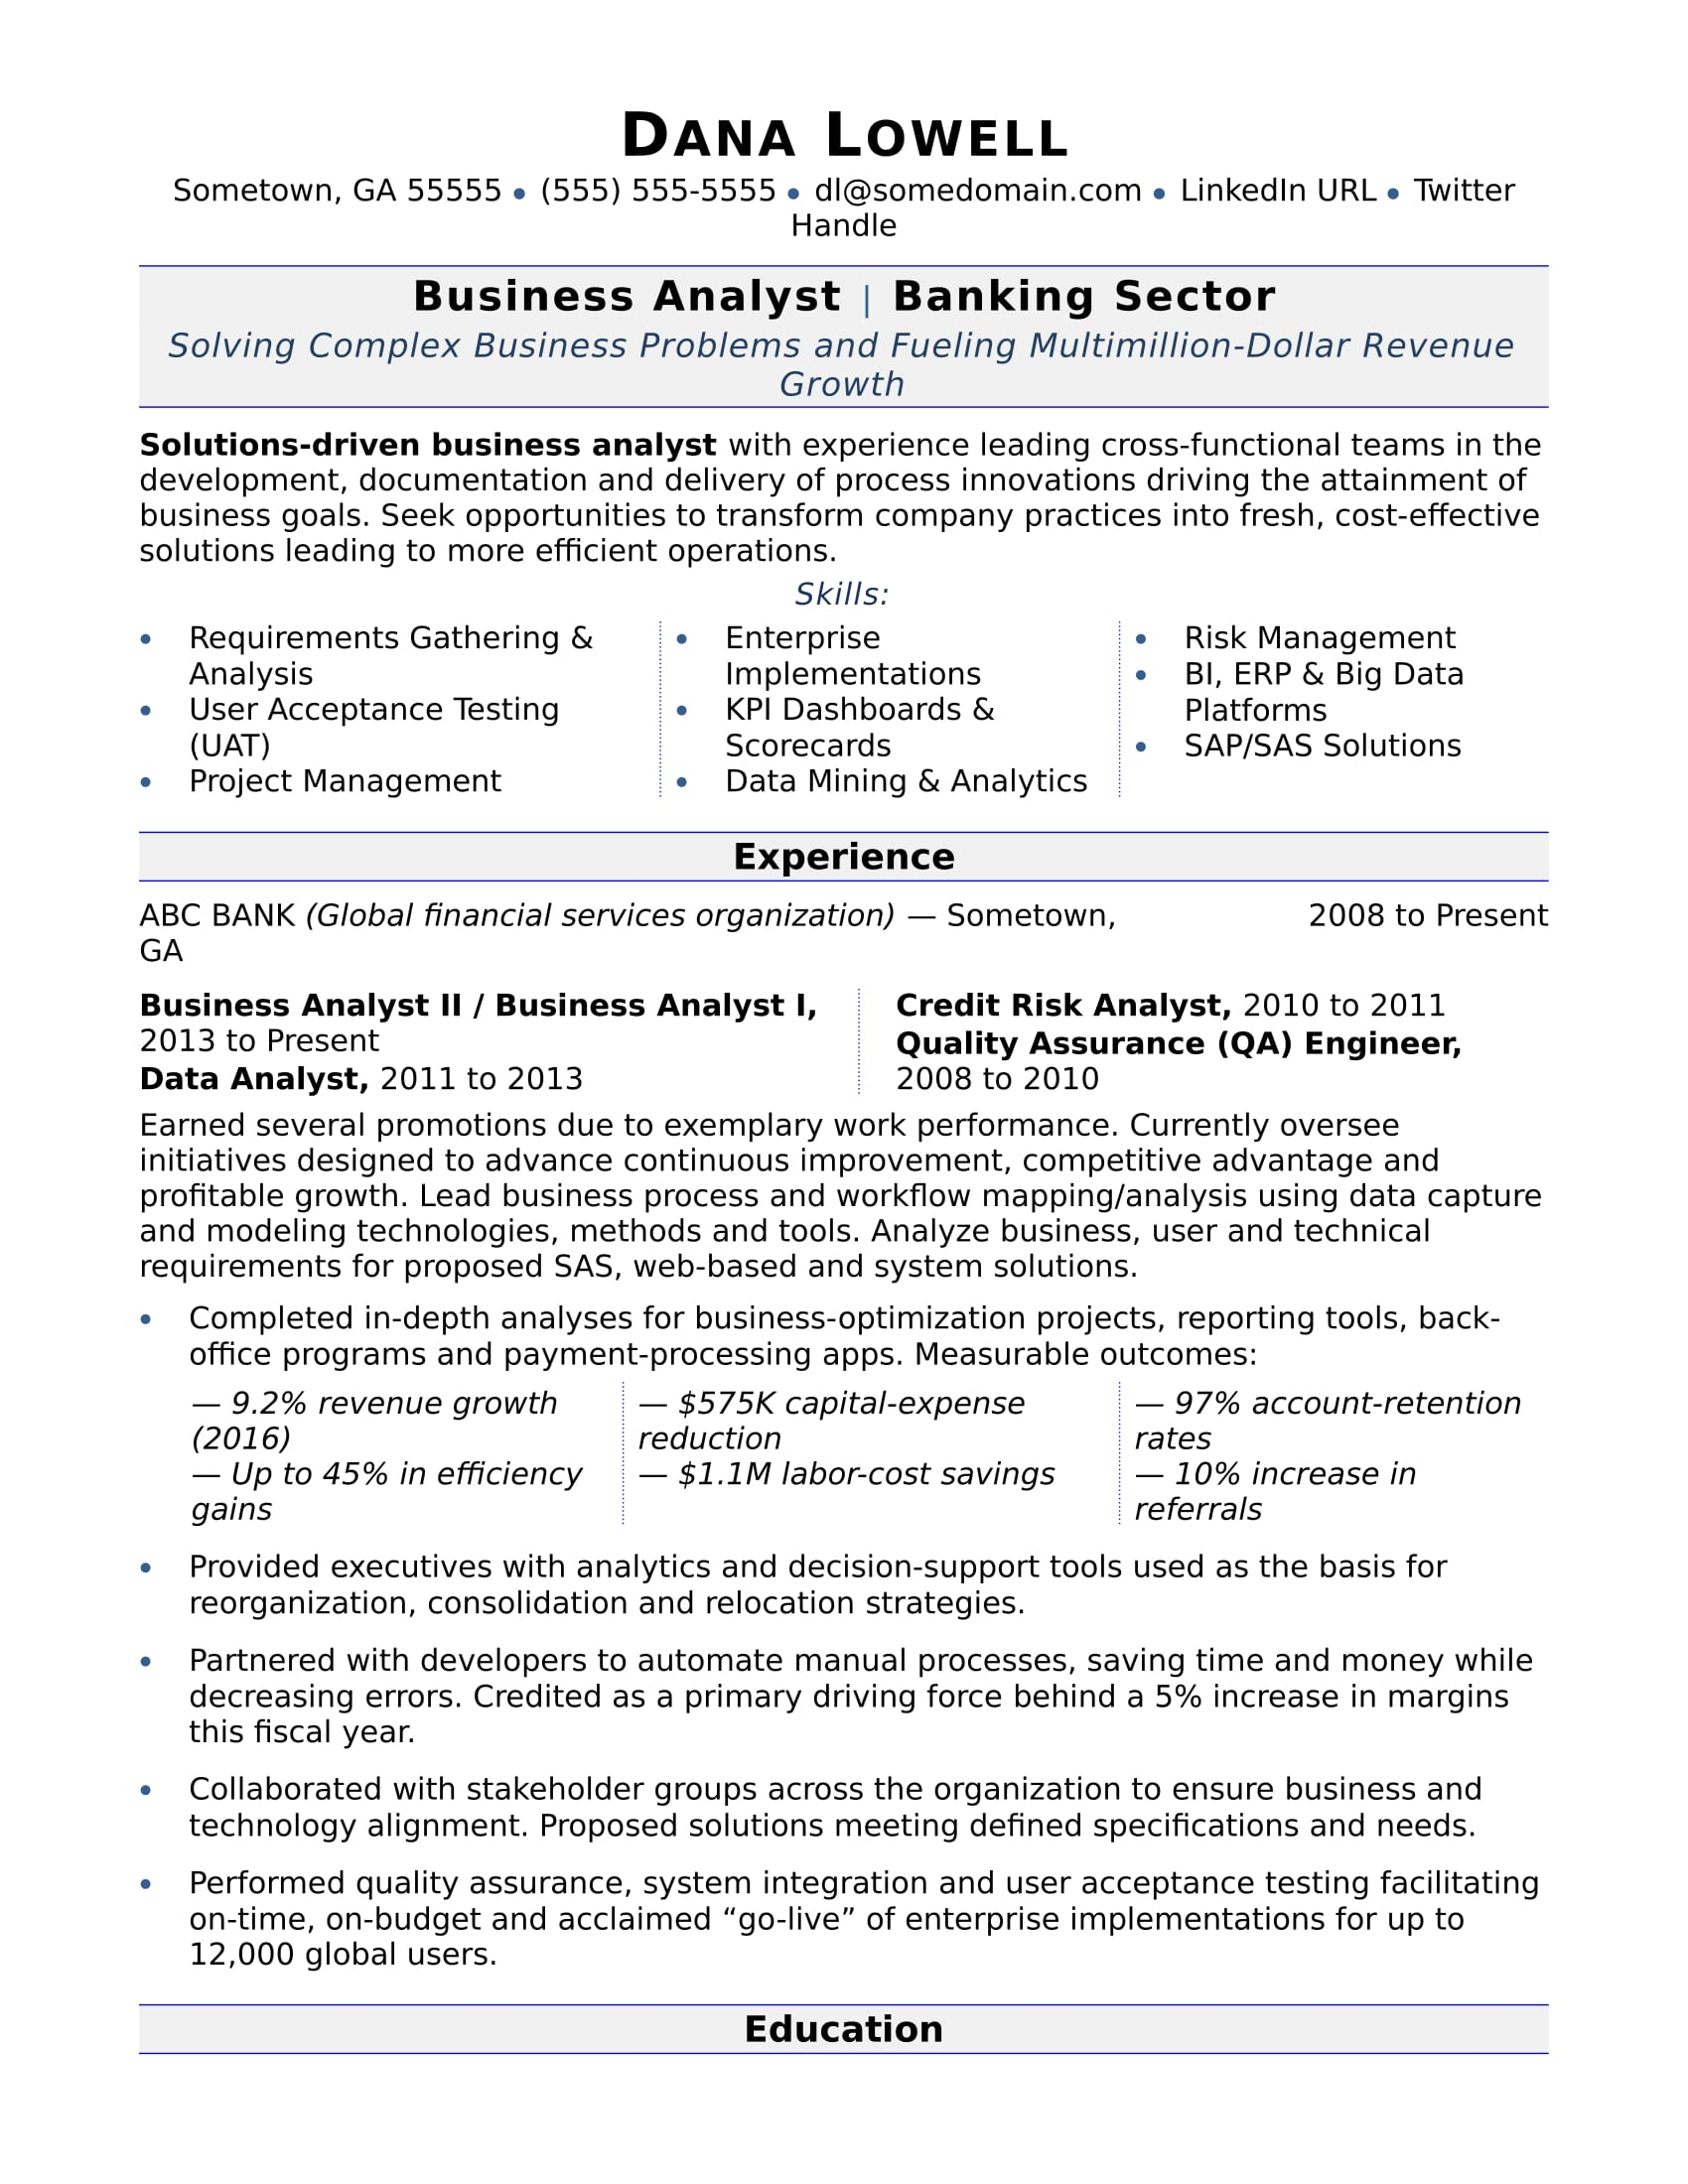 business analyst resume summary bire 1andwap com